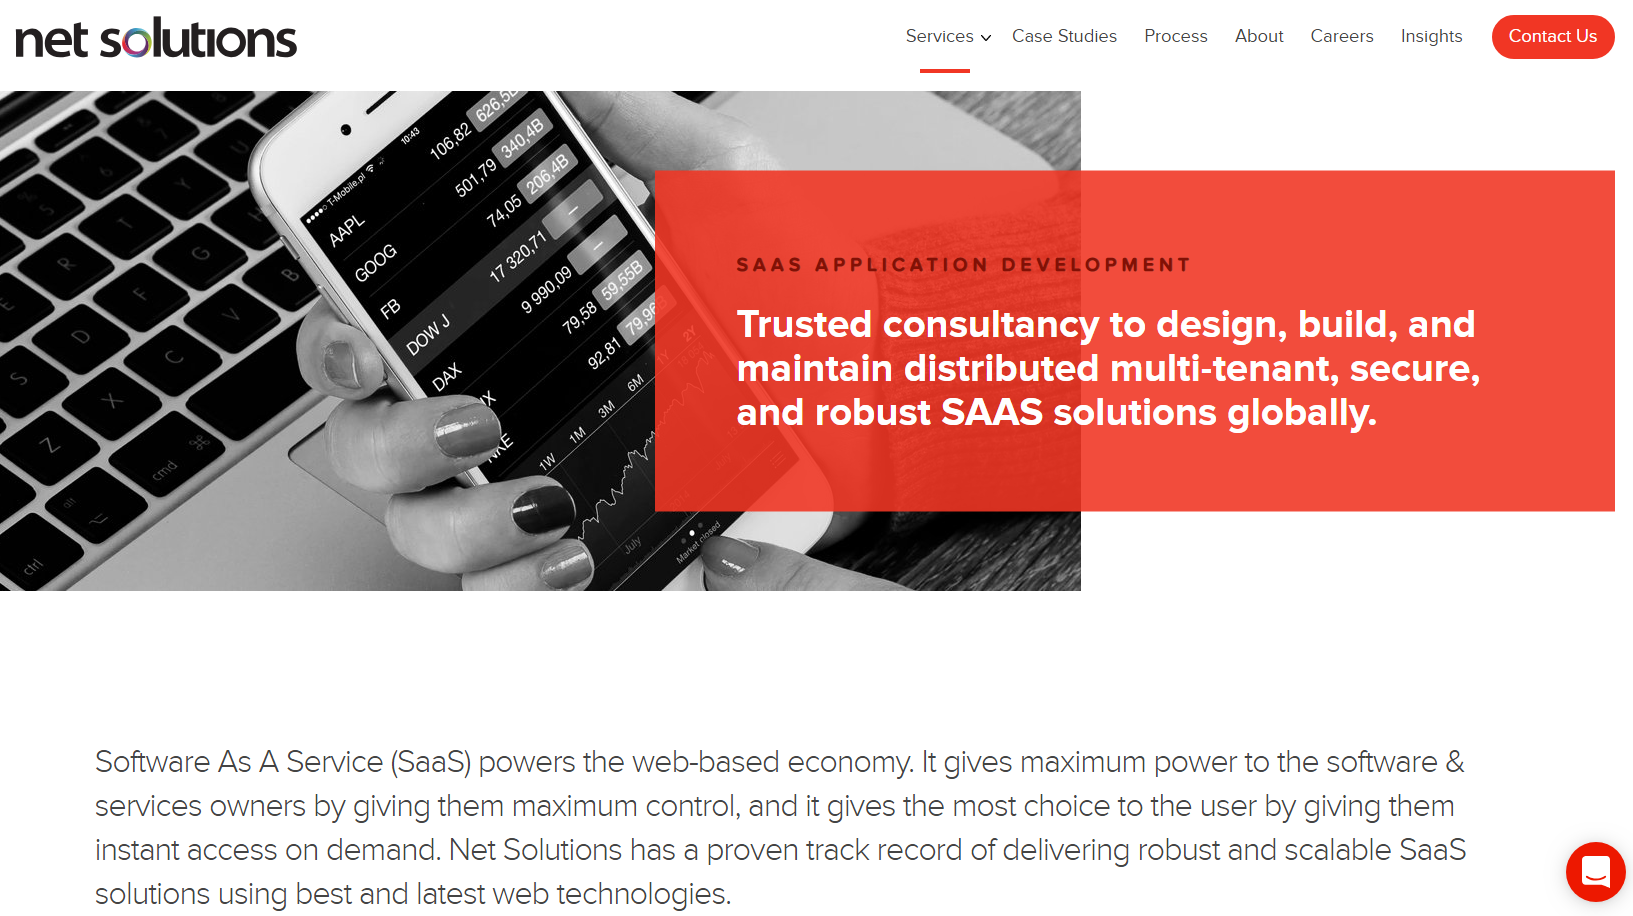 Expert saas software development company - Net Solutions